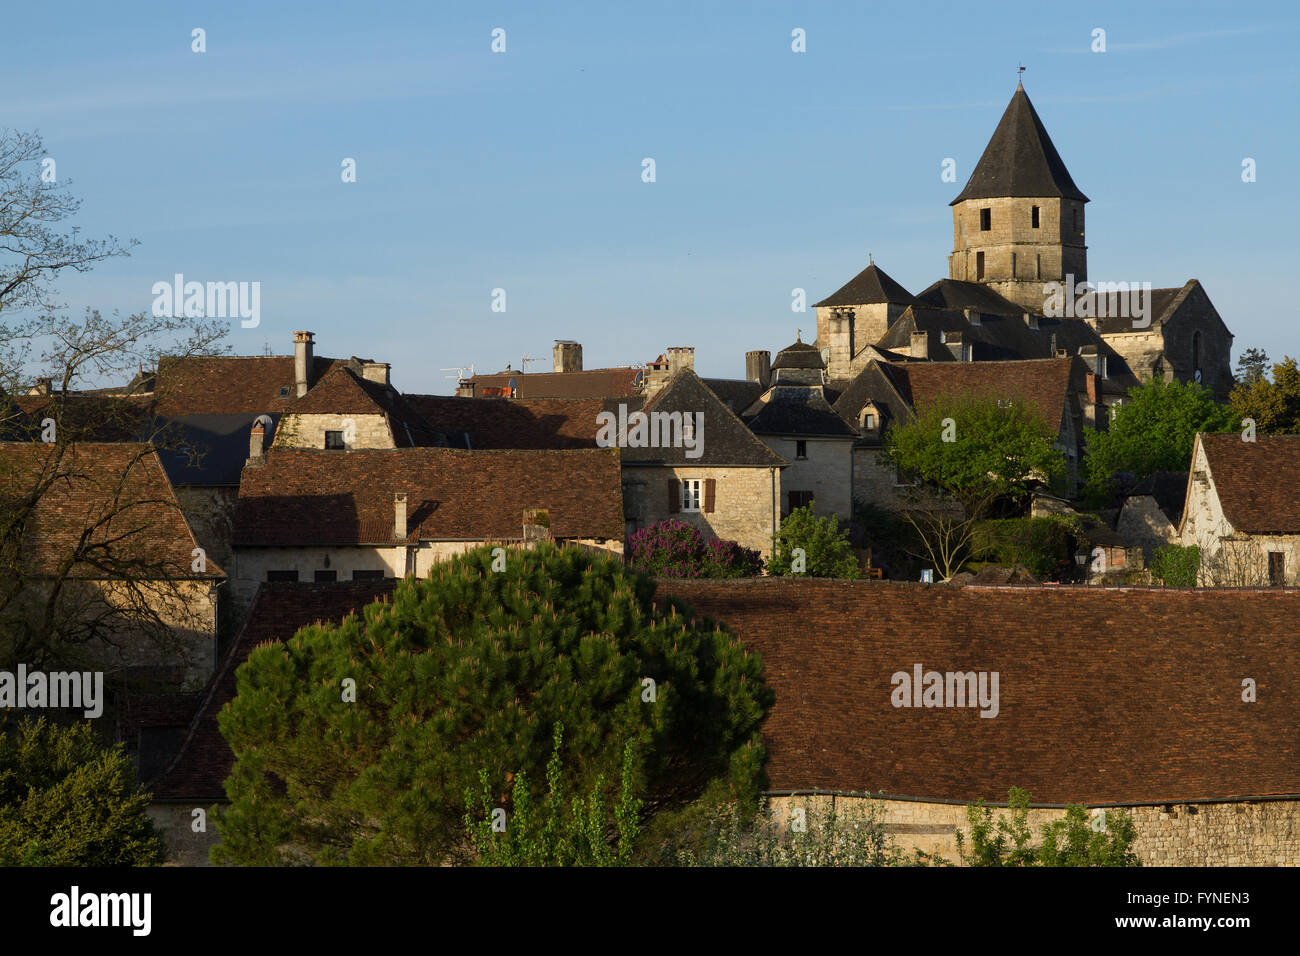 The charming village of Saint Robert Correze France Stock Photo